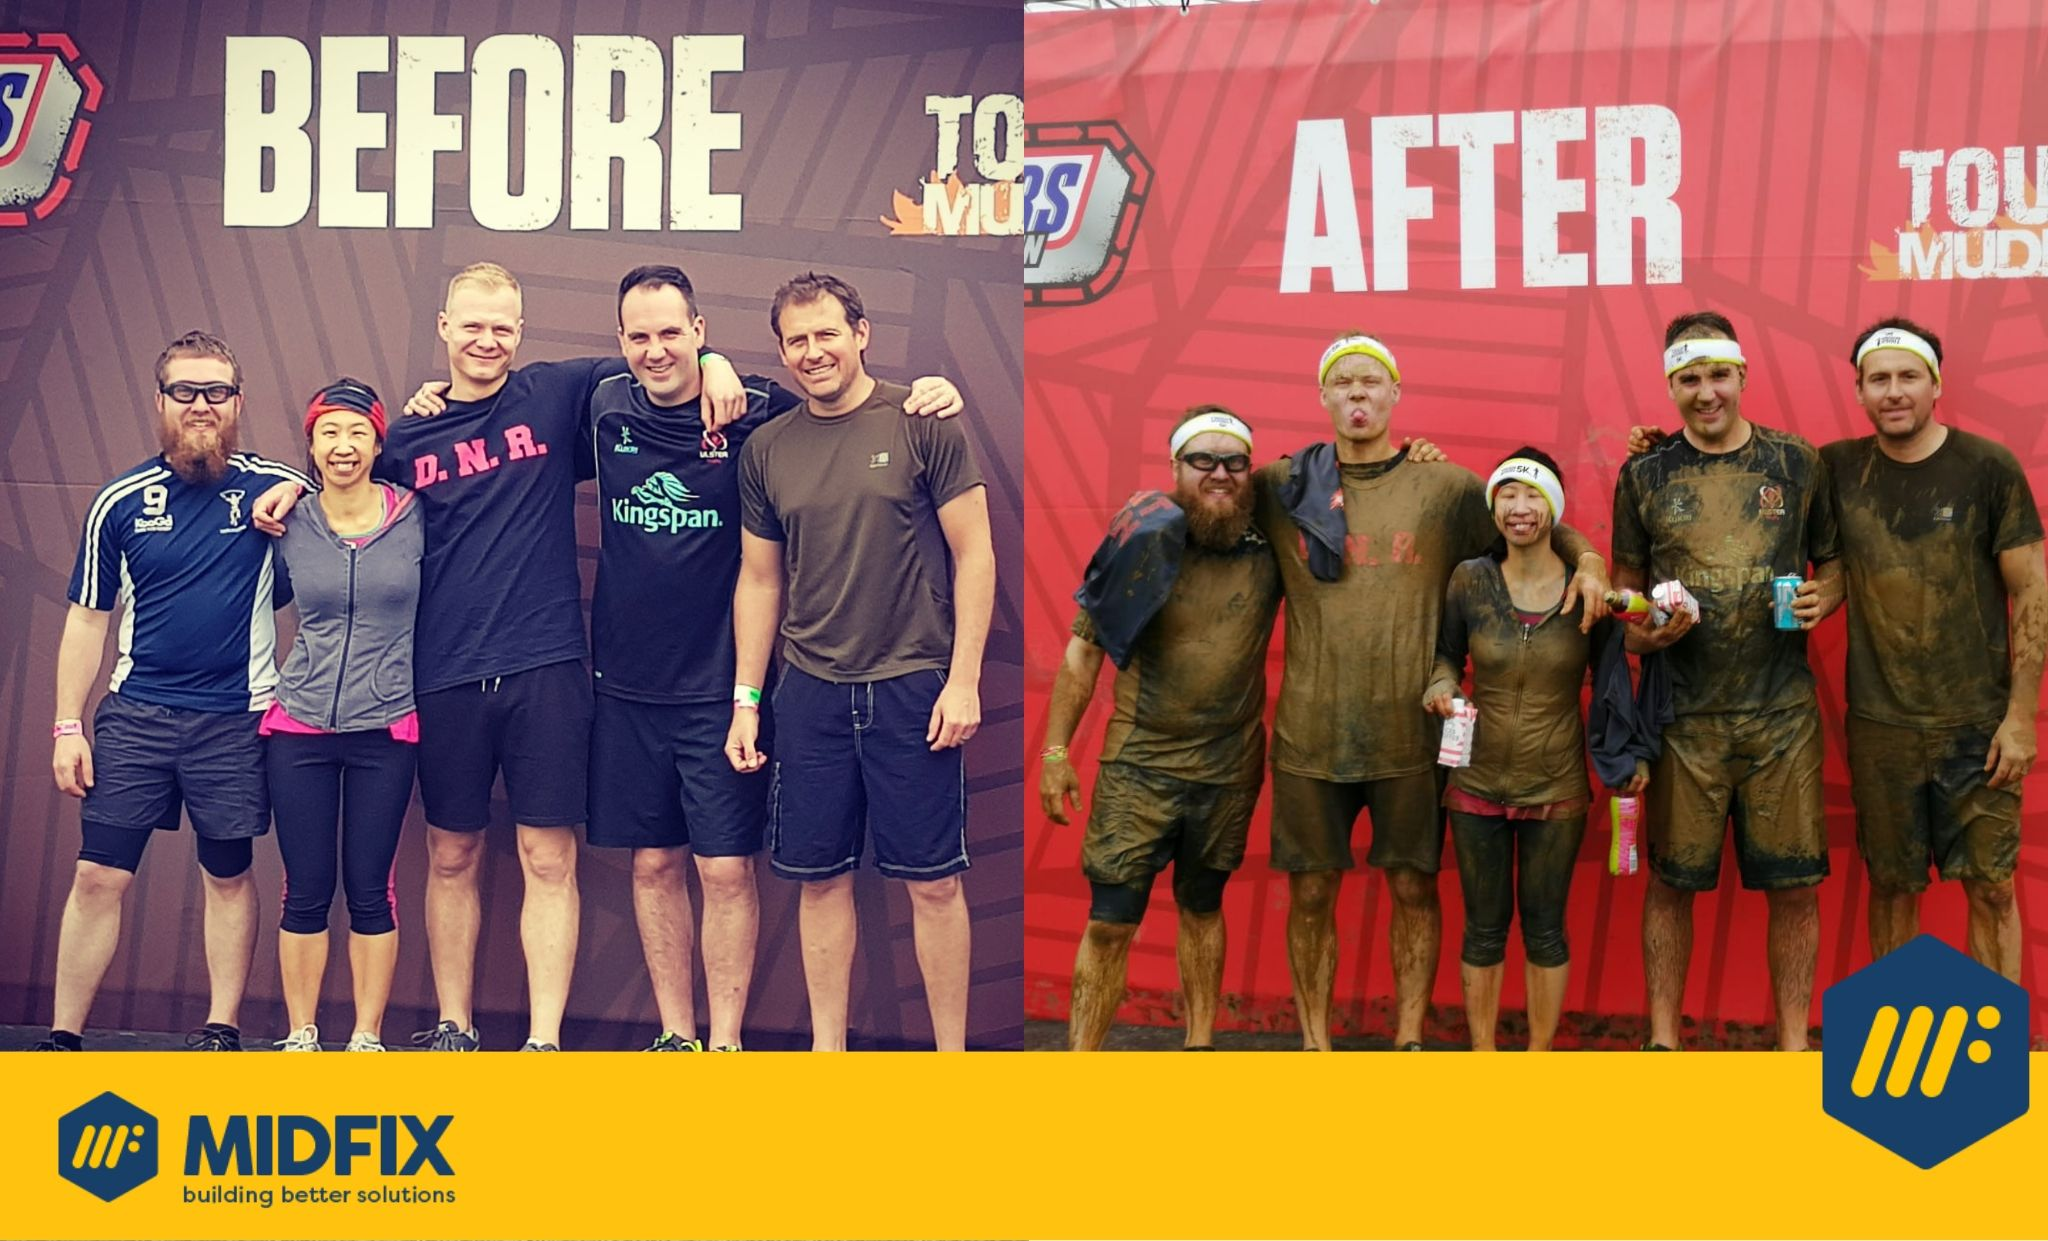 Tough Mudder - MIDFIX